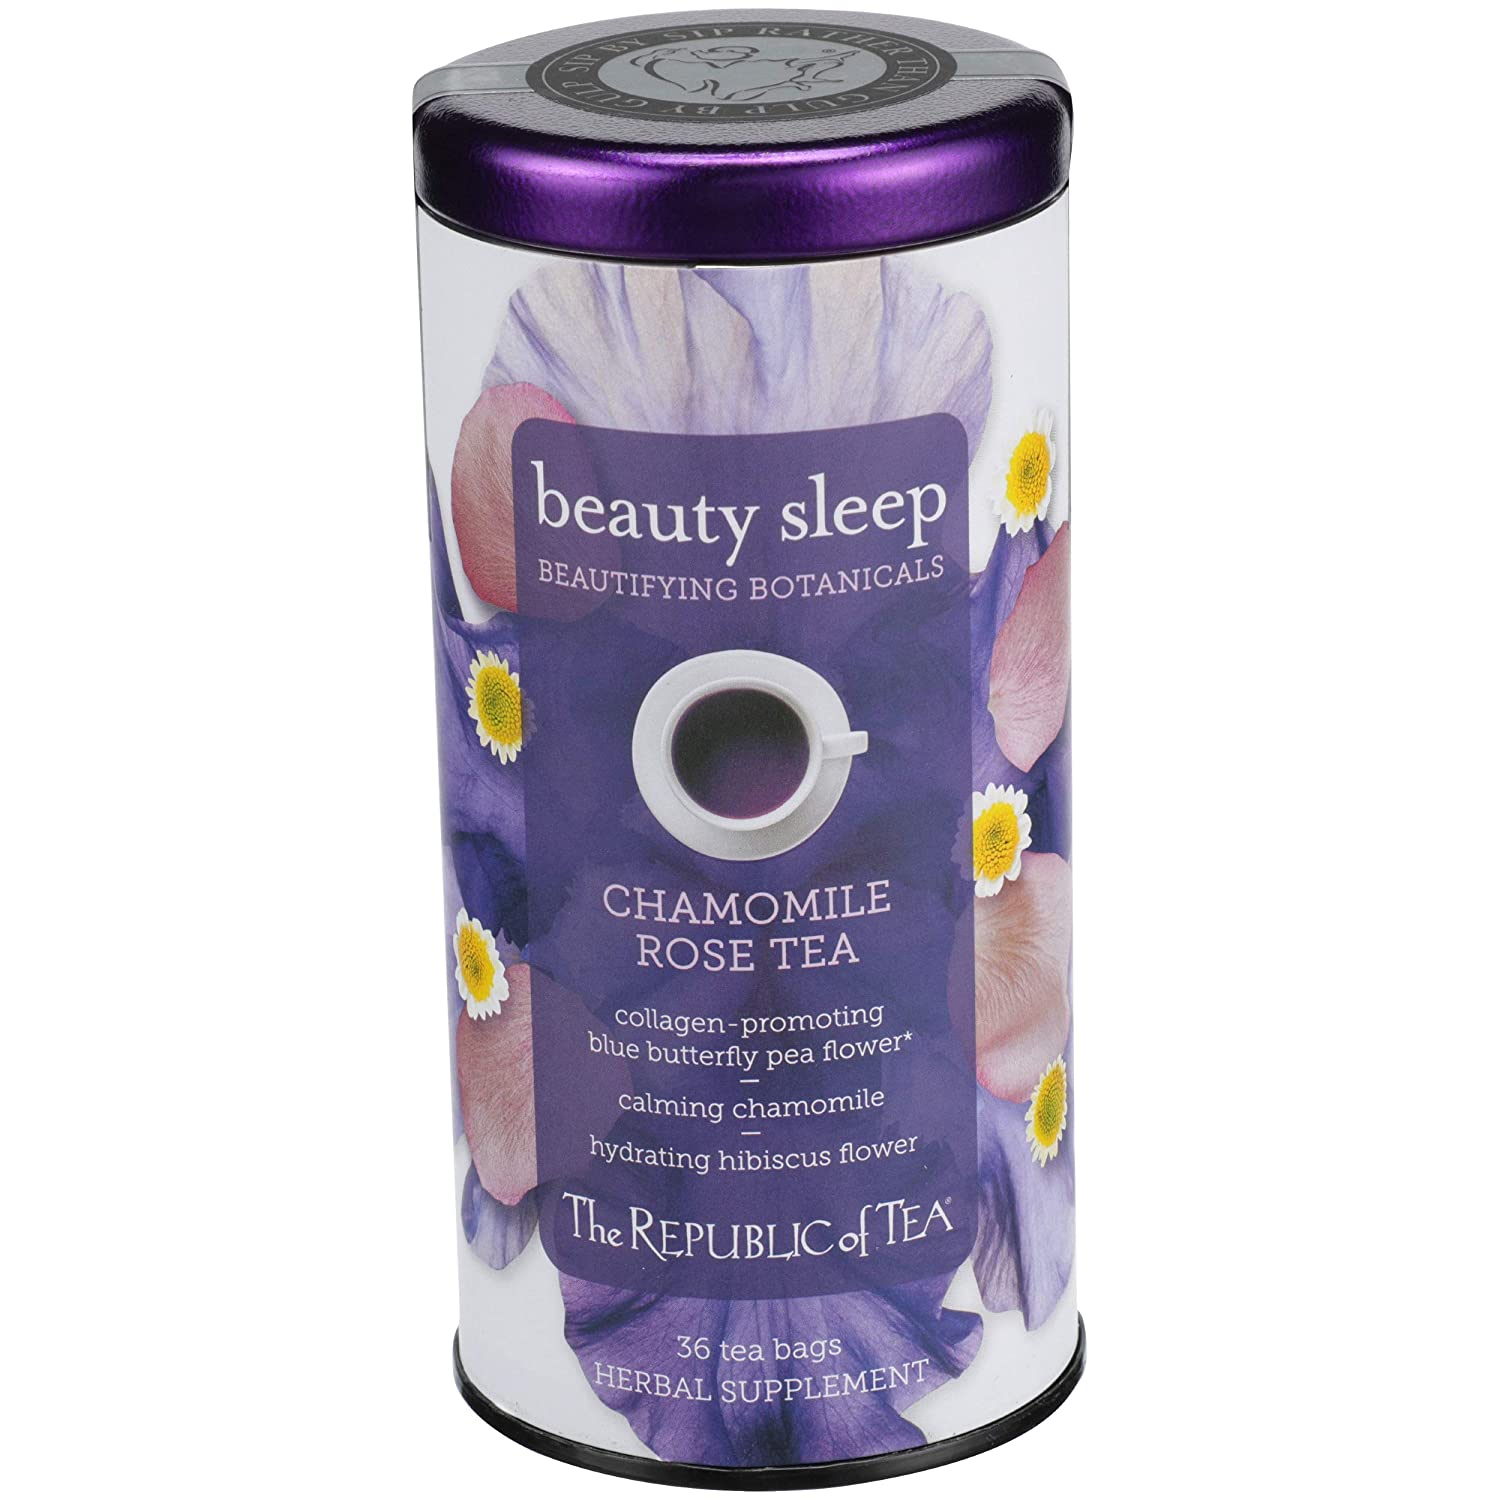 The Republic of Tea Beautifying Botanicals️ Beauty Sleep Herbal Tea 36 Tea Bag